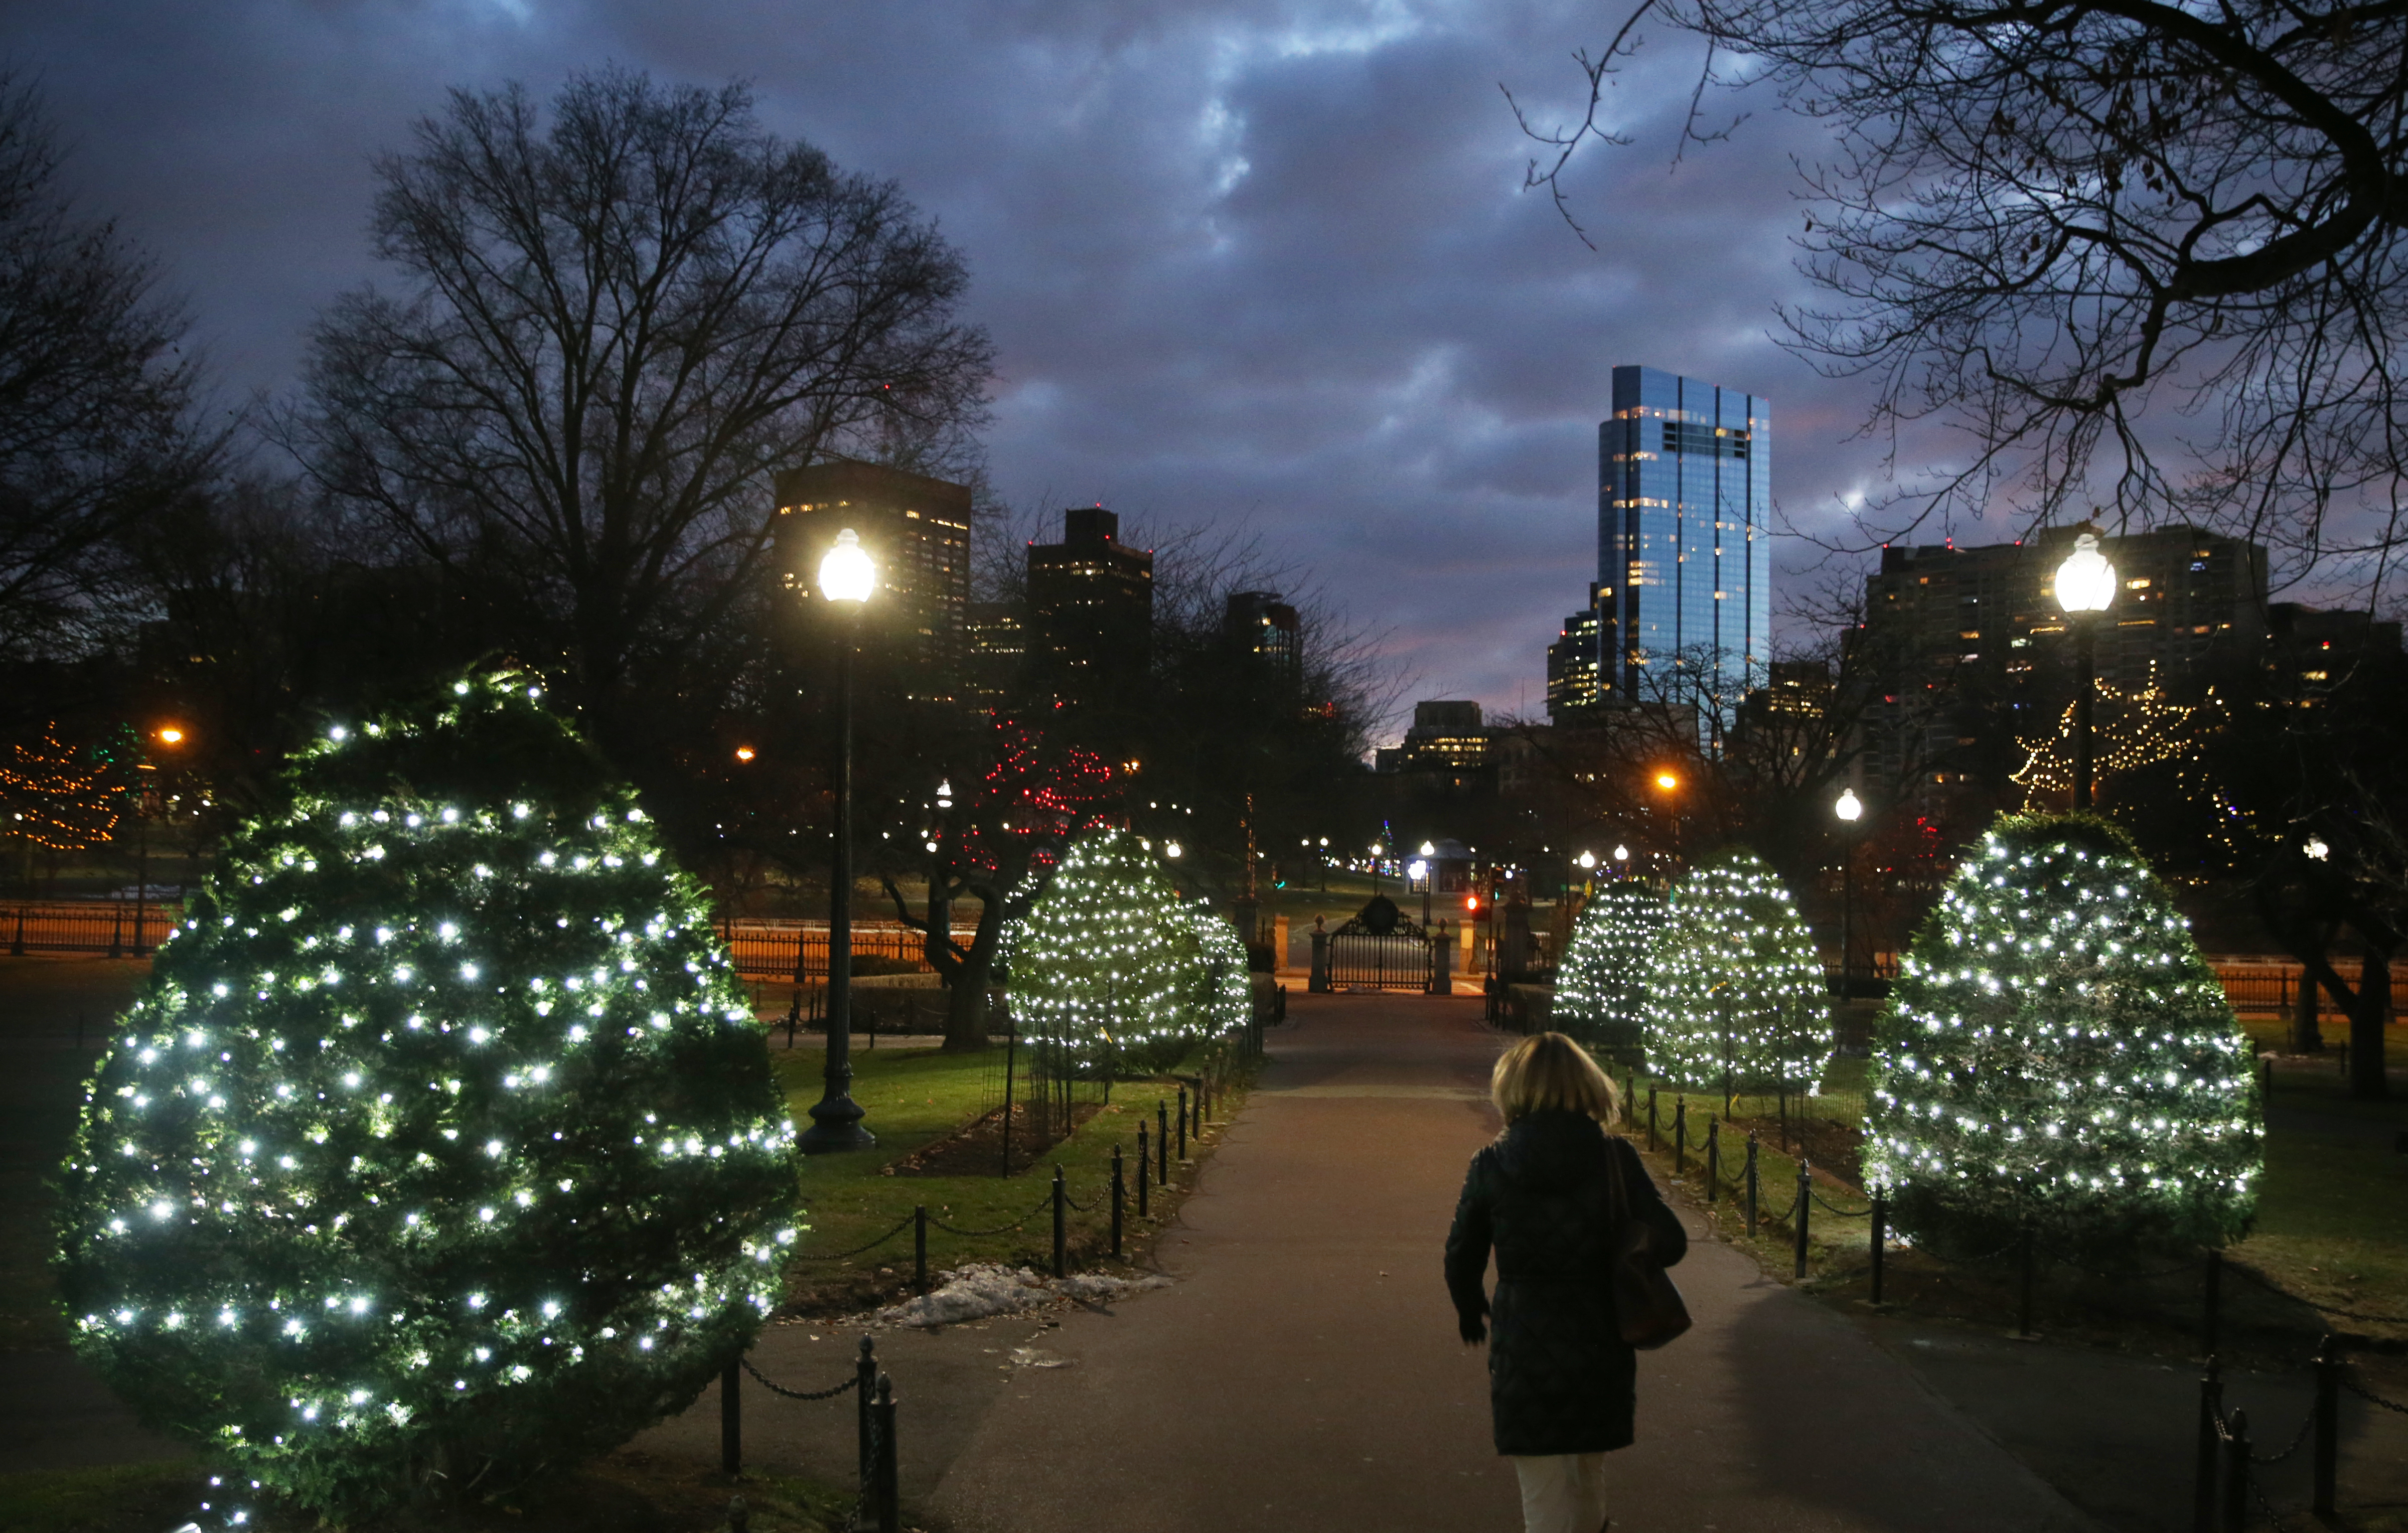 A person walking between two rows of illuminated bushes at night in a public park in a city.